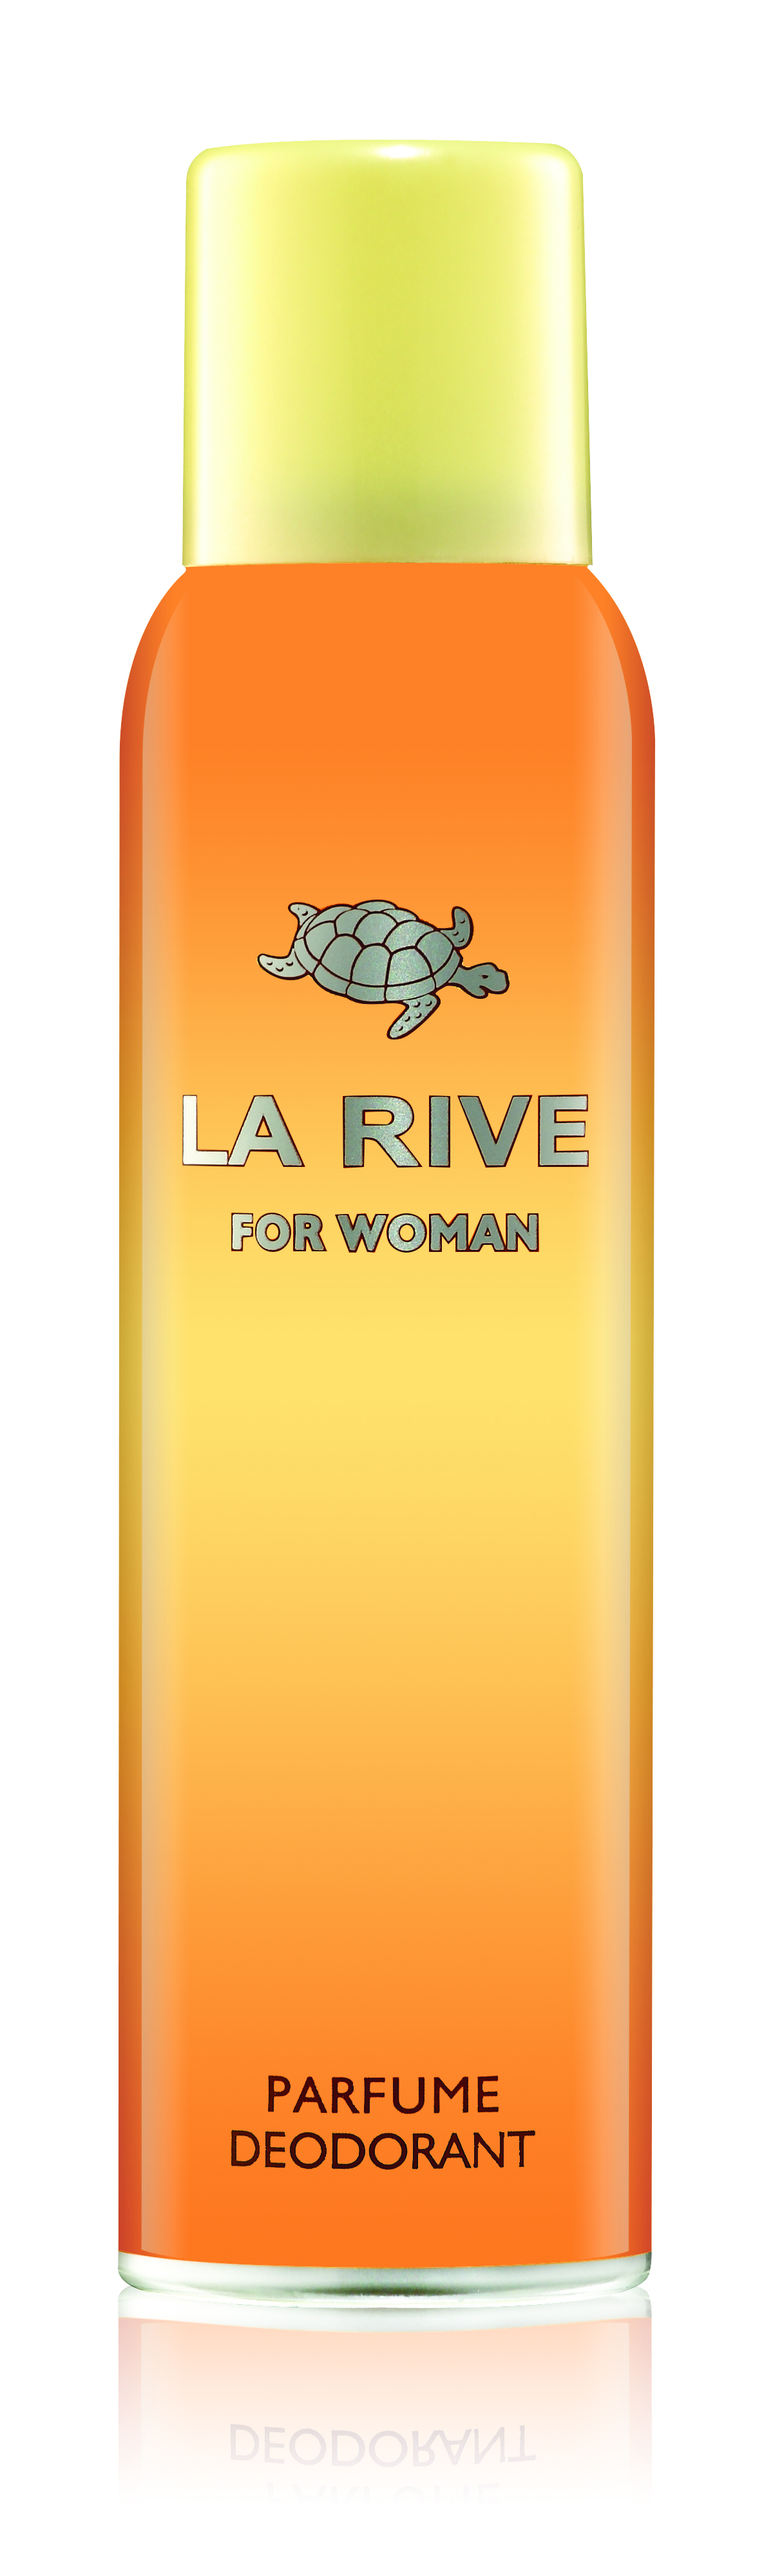 LA RIVE for woman, 150ml